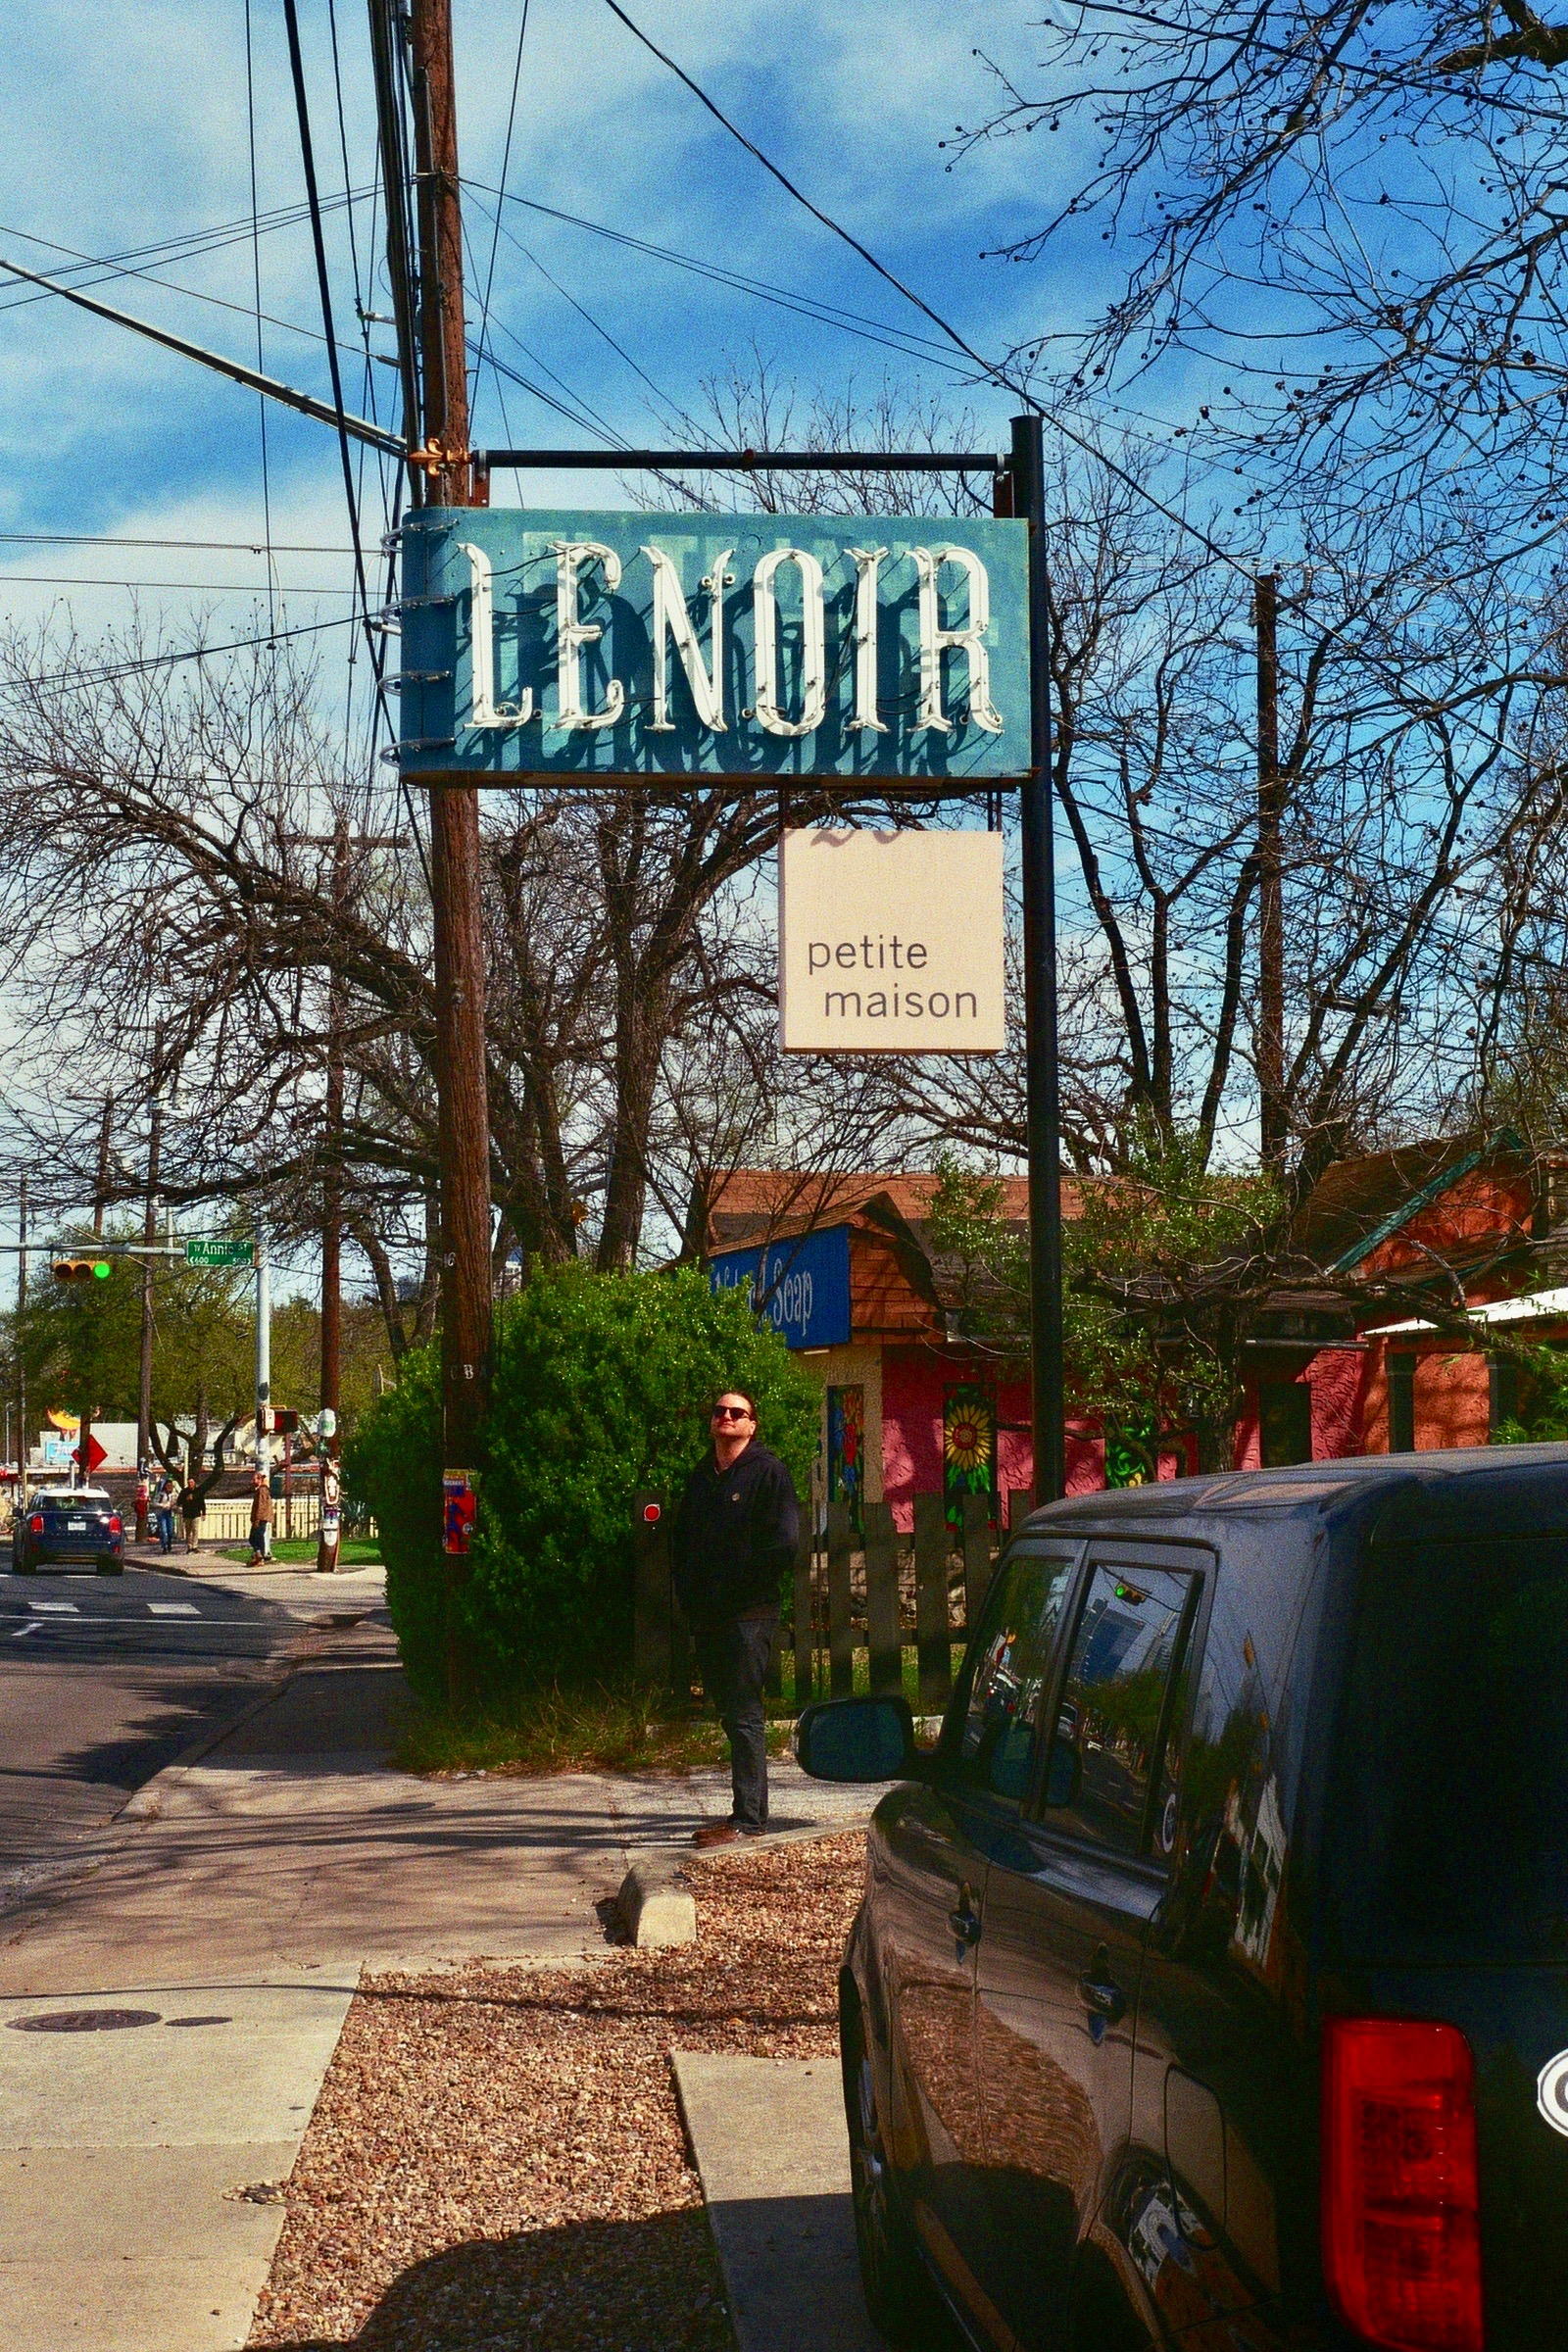 Bouldin, with local friend Rob pictured.  Austin, TX.  Kodak Ultra Max 400. Pentax K1000. Fletcher Berryman 2019.